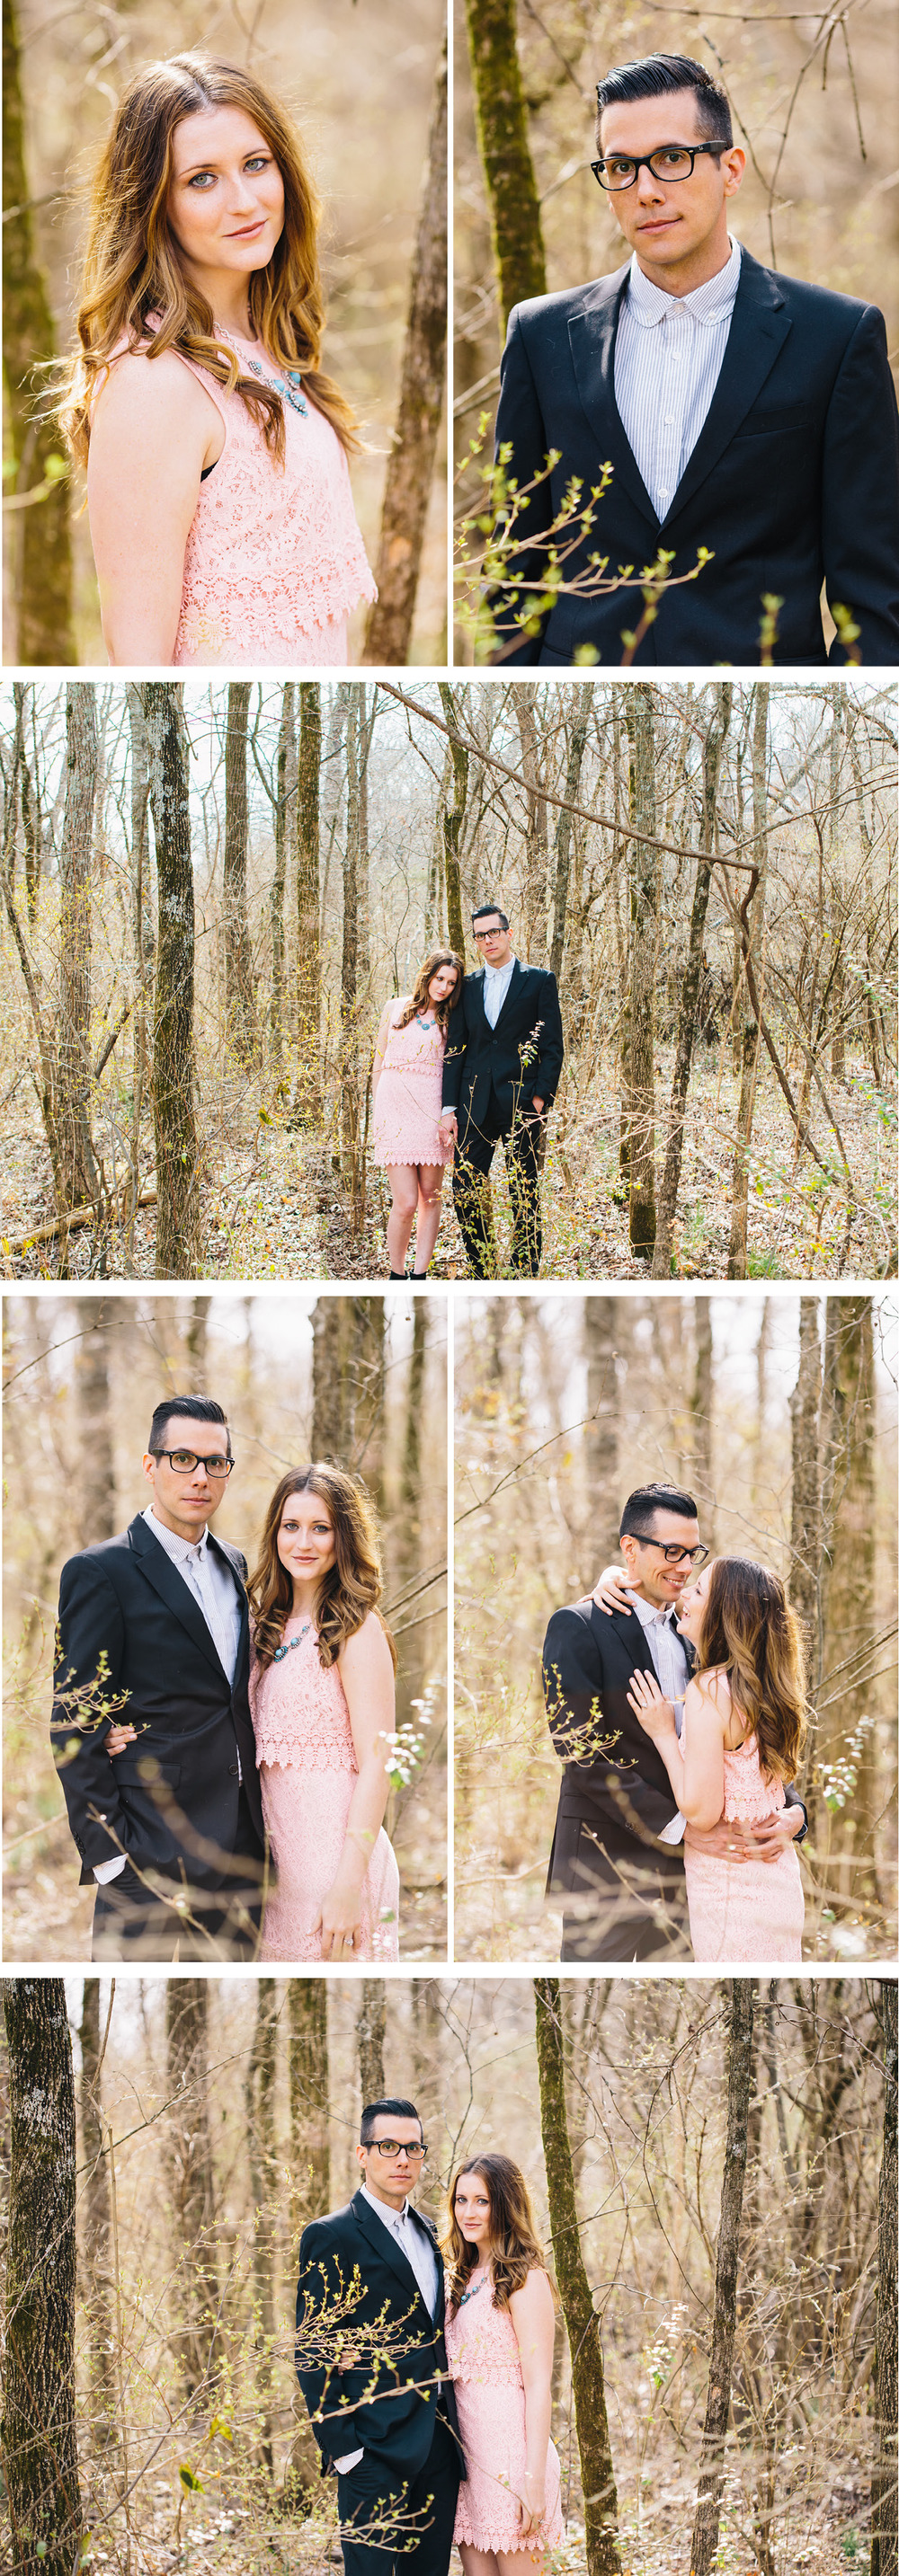 CK-Photo-Nashville-Wedding-Photographer-MB2.jpg